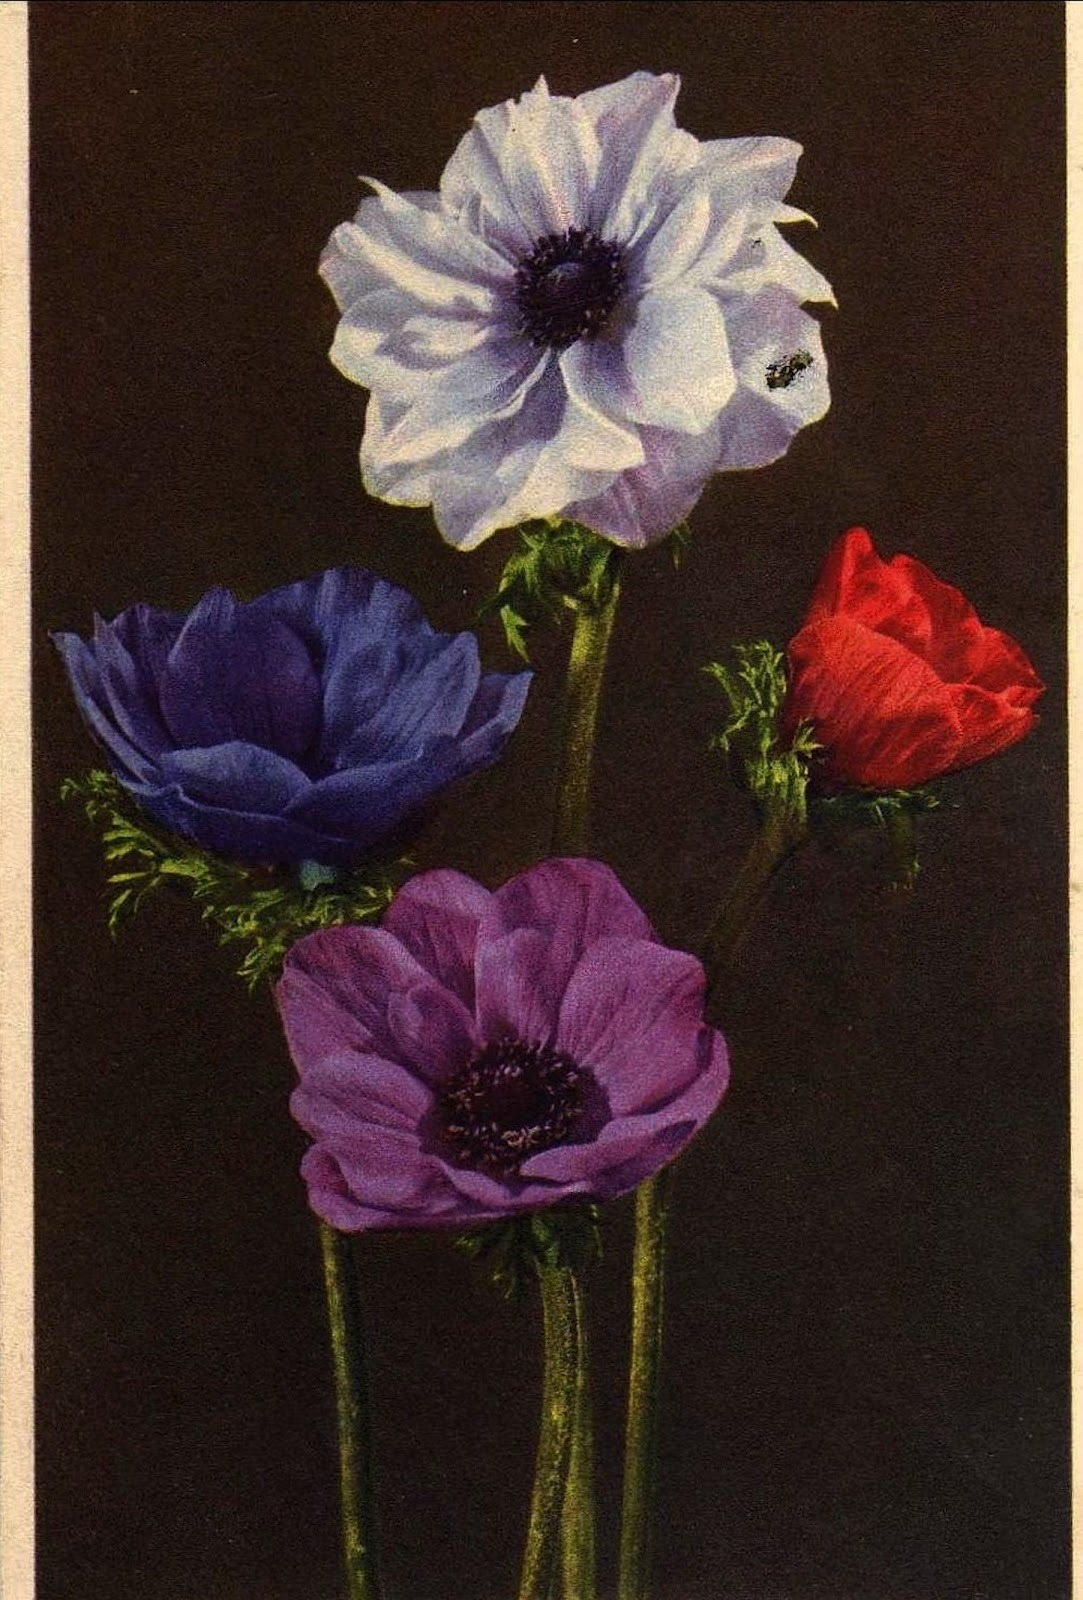 Anemone coronaria (Crown anemone), Ippy Patterson, 100 Flowers and How They Got Their Names